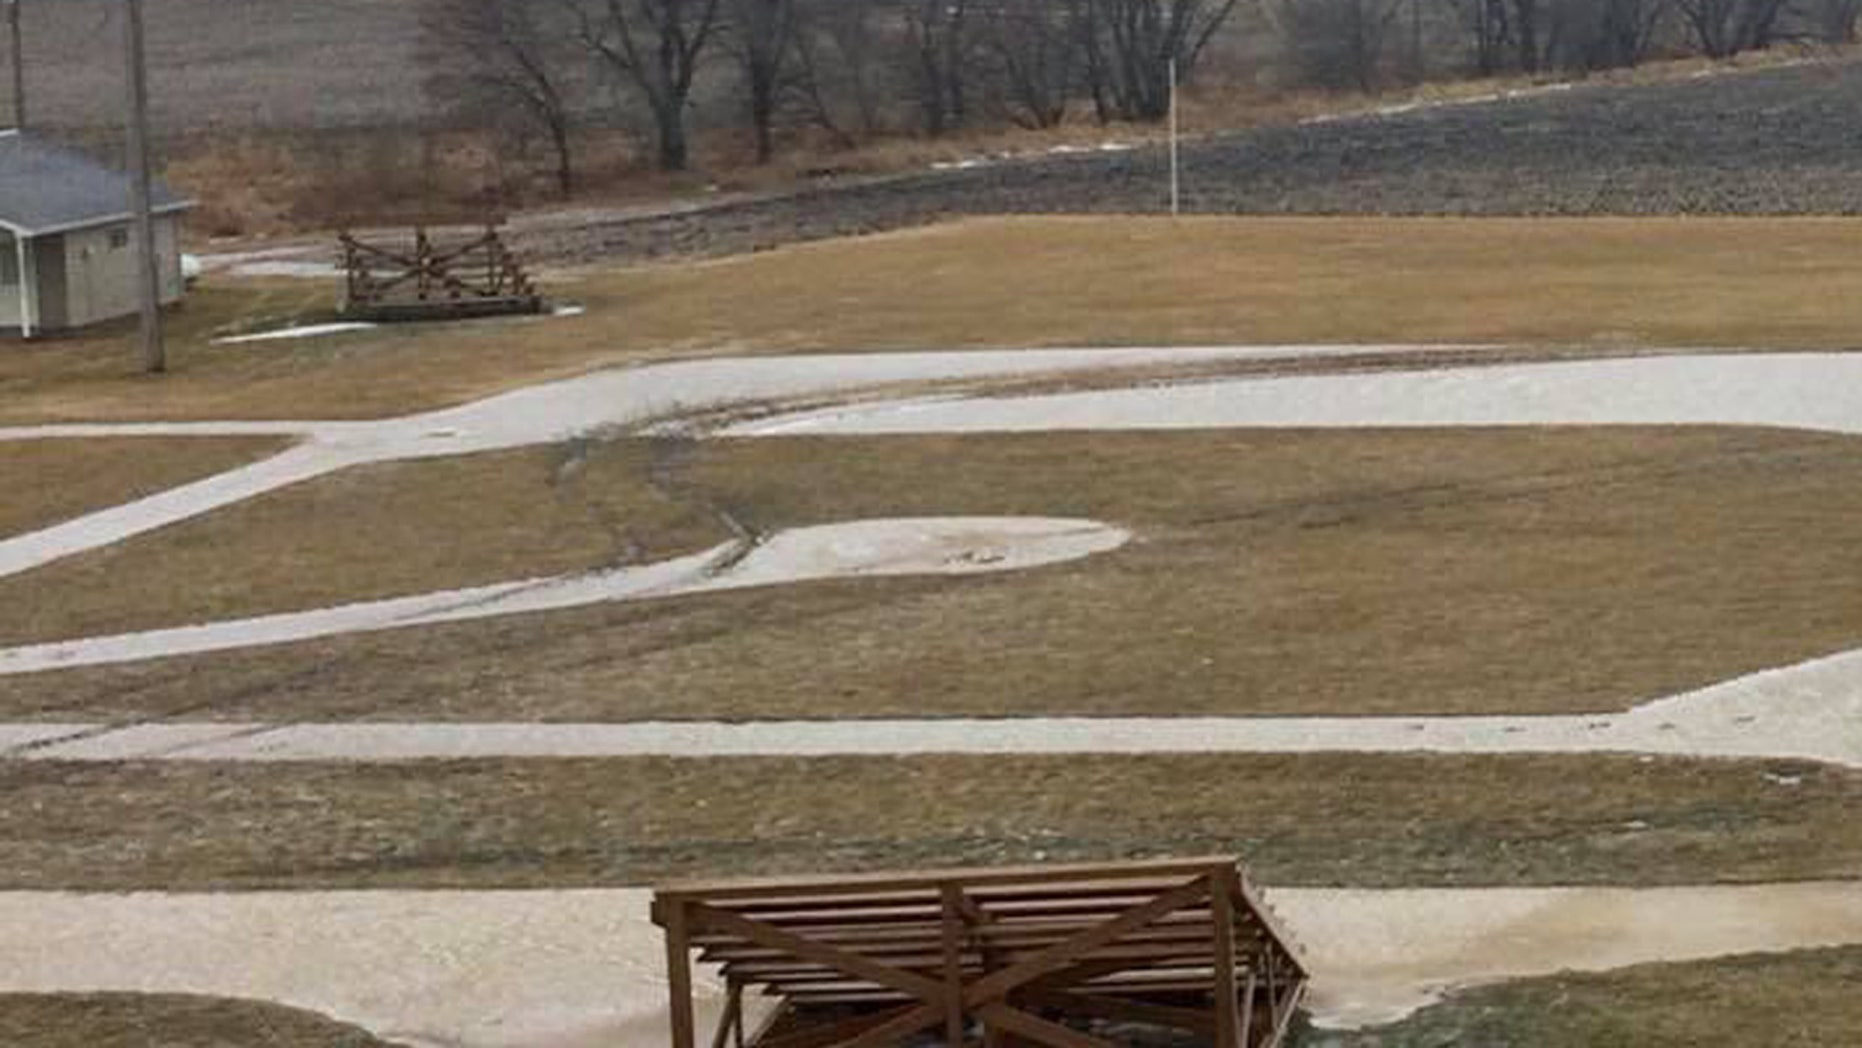 """Damage to the """"Field of Dreams"""" movie site in Dyersville, Iowa, is visible after a vandal drove onto the field."""